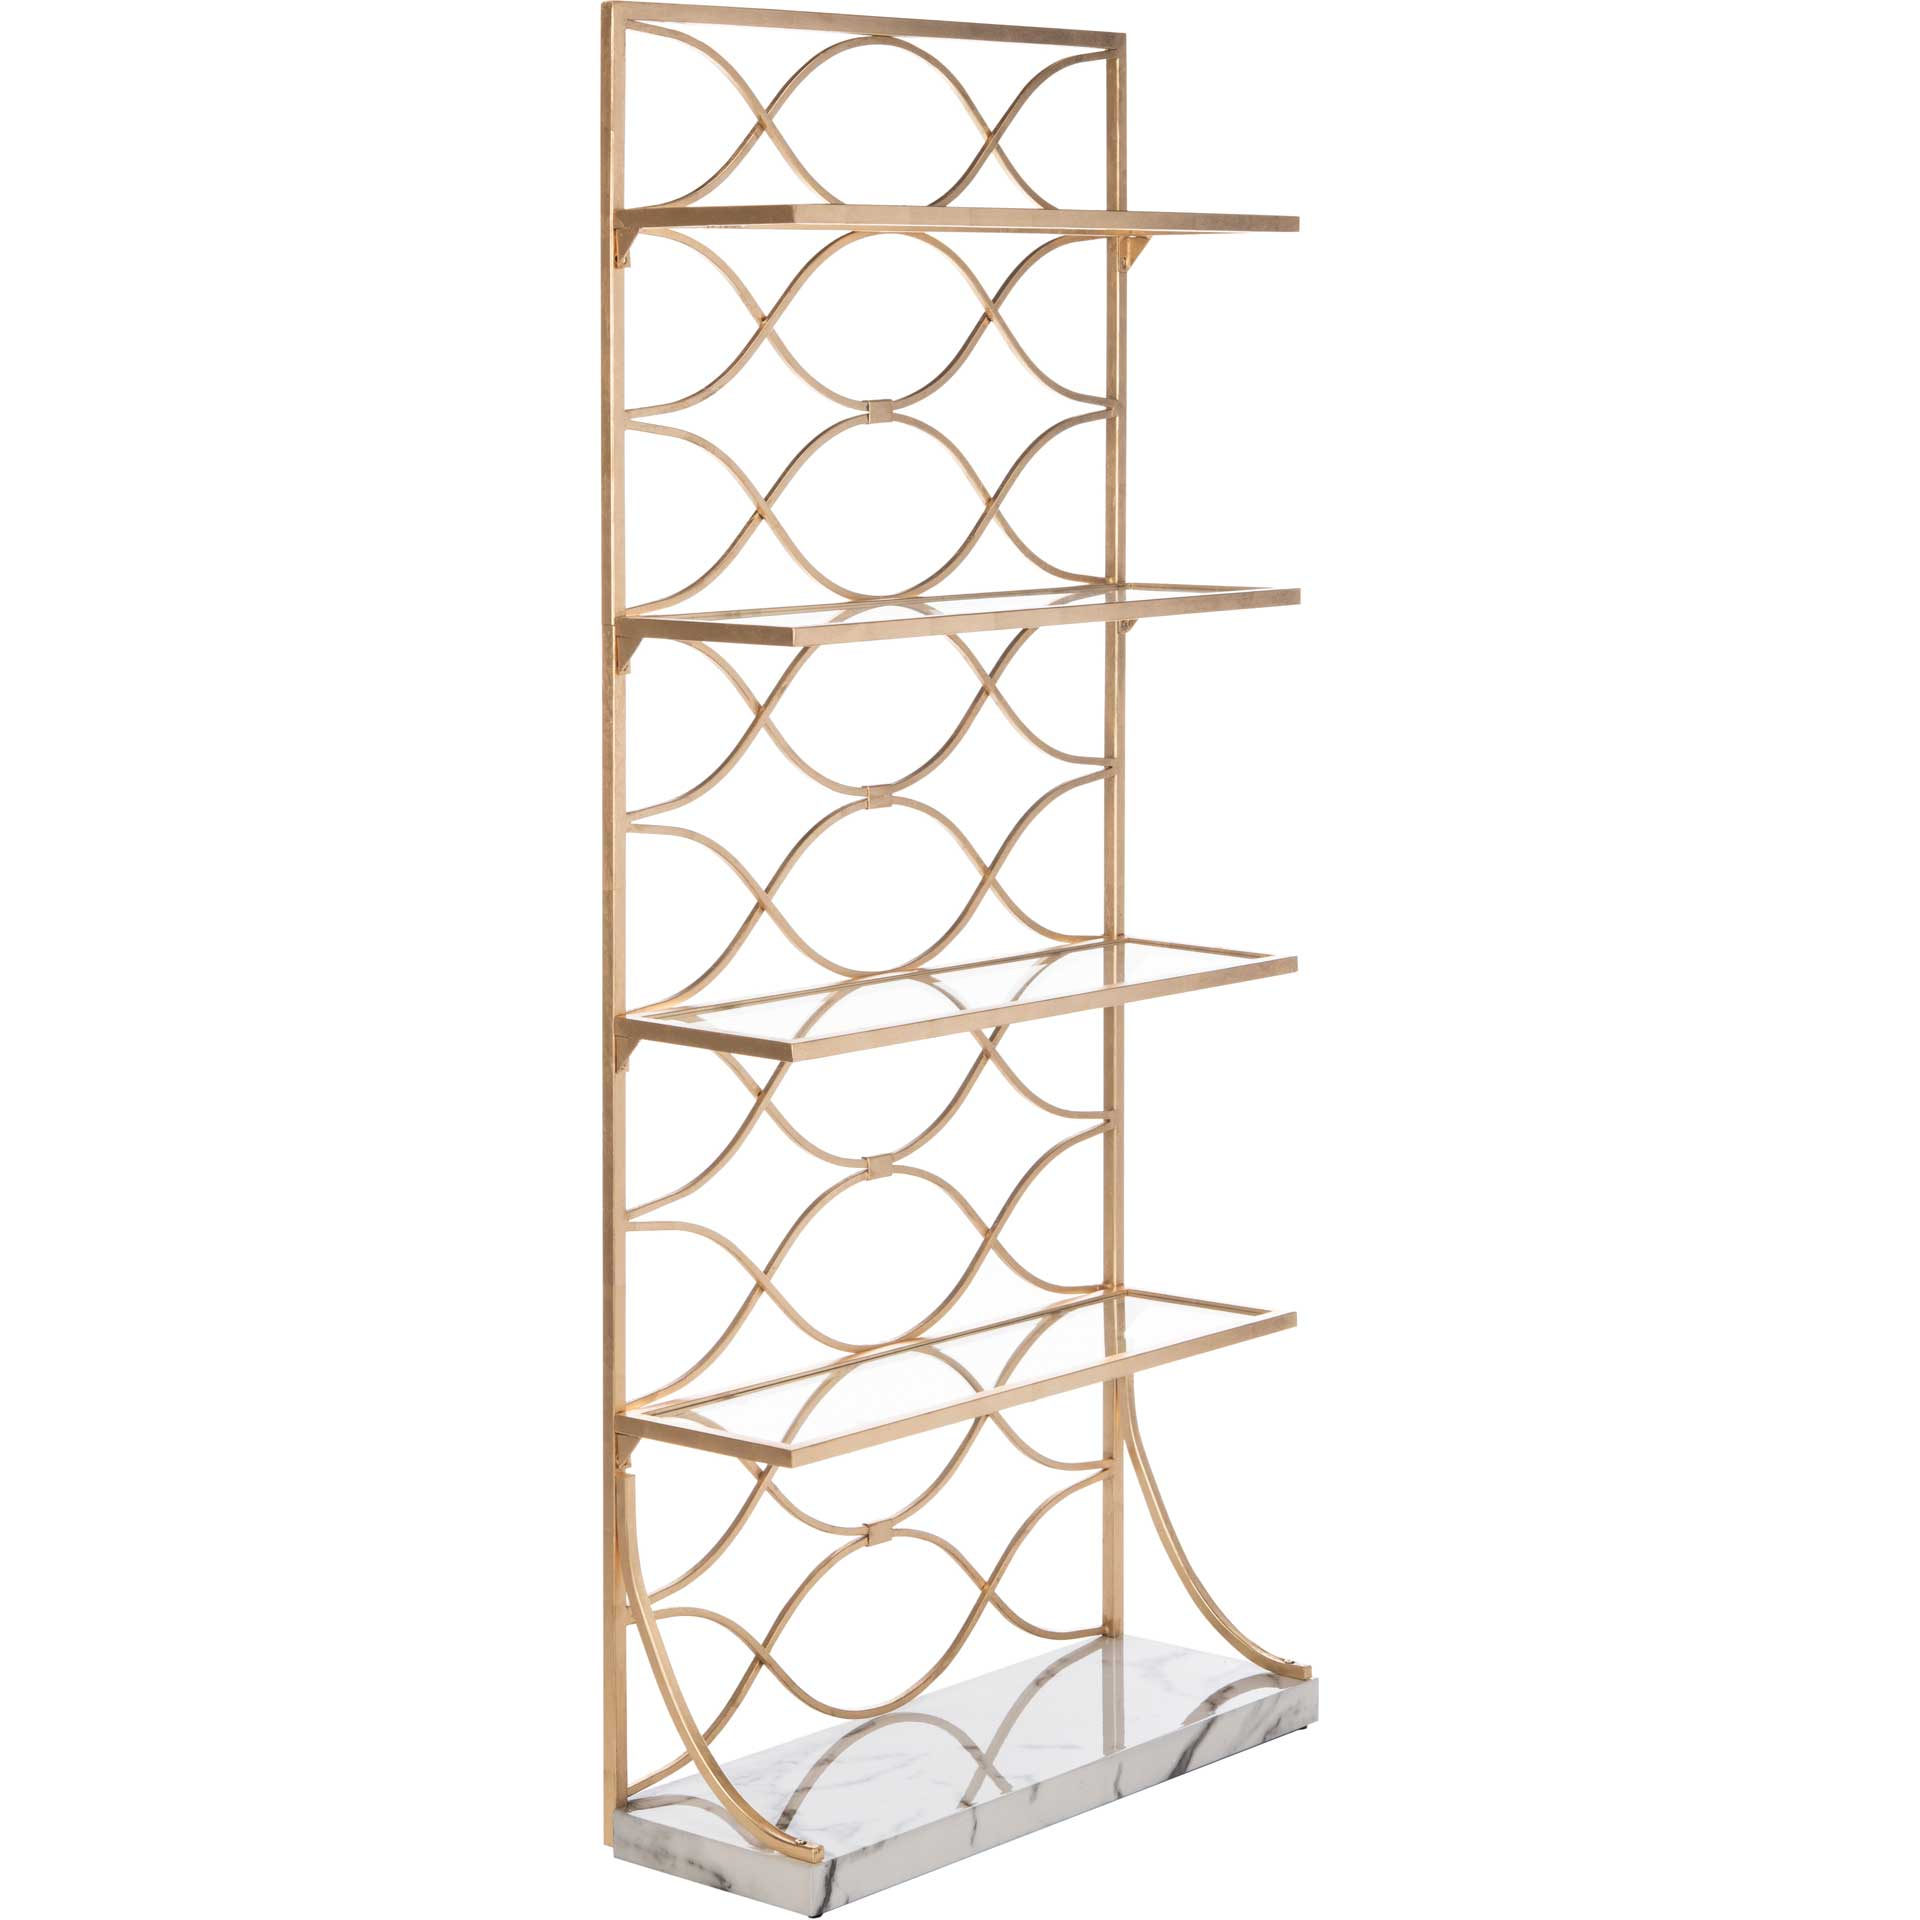 Sparkle Marble Base Etagere Gold/White/Clear